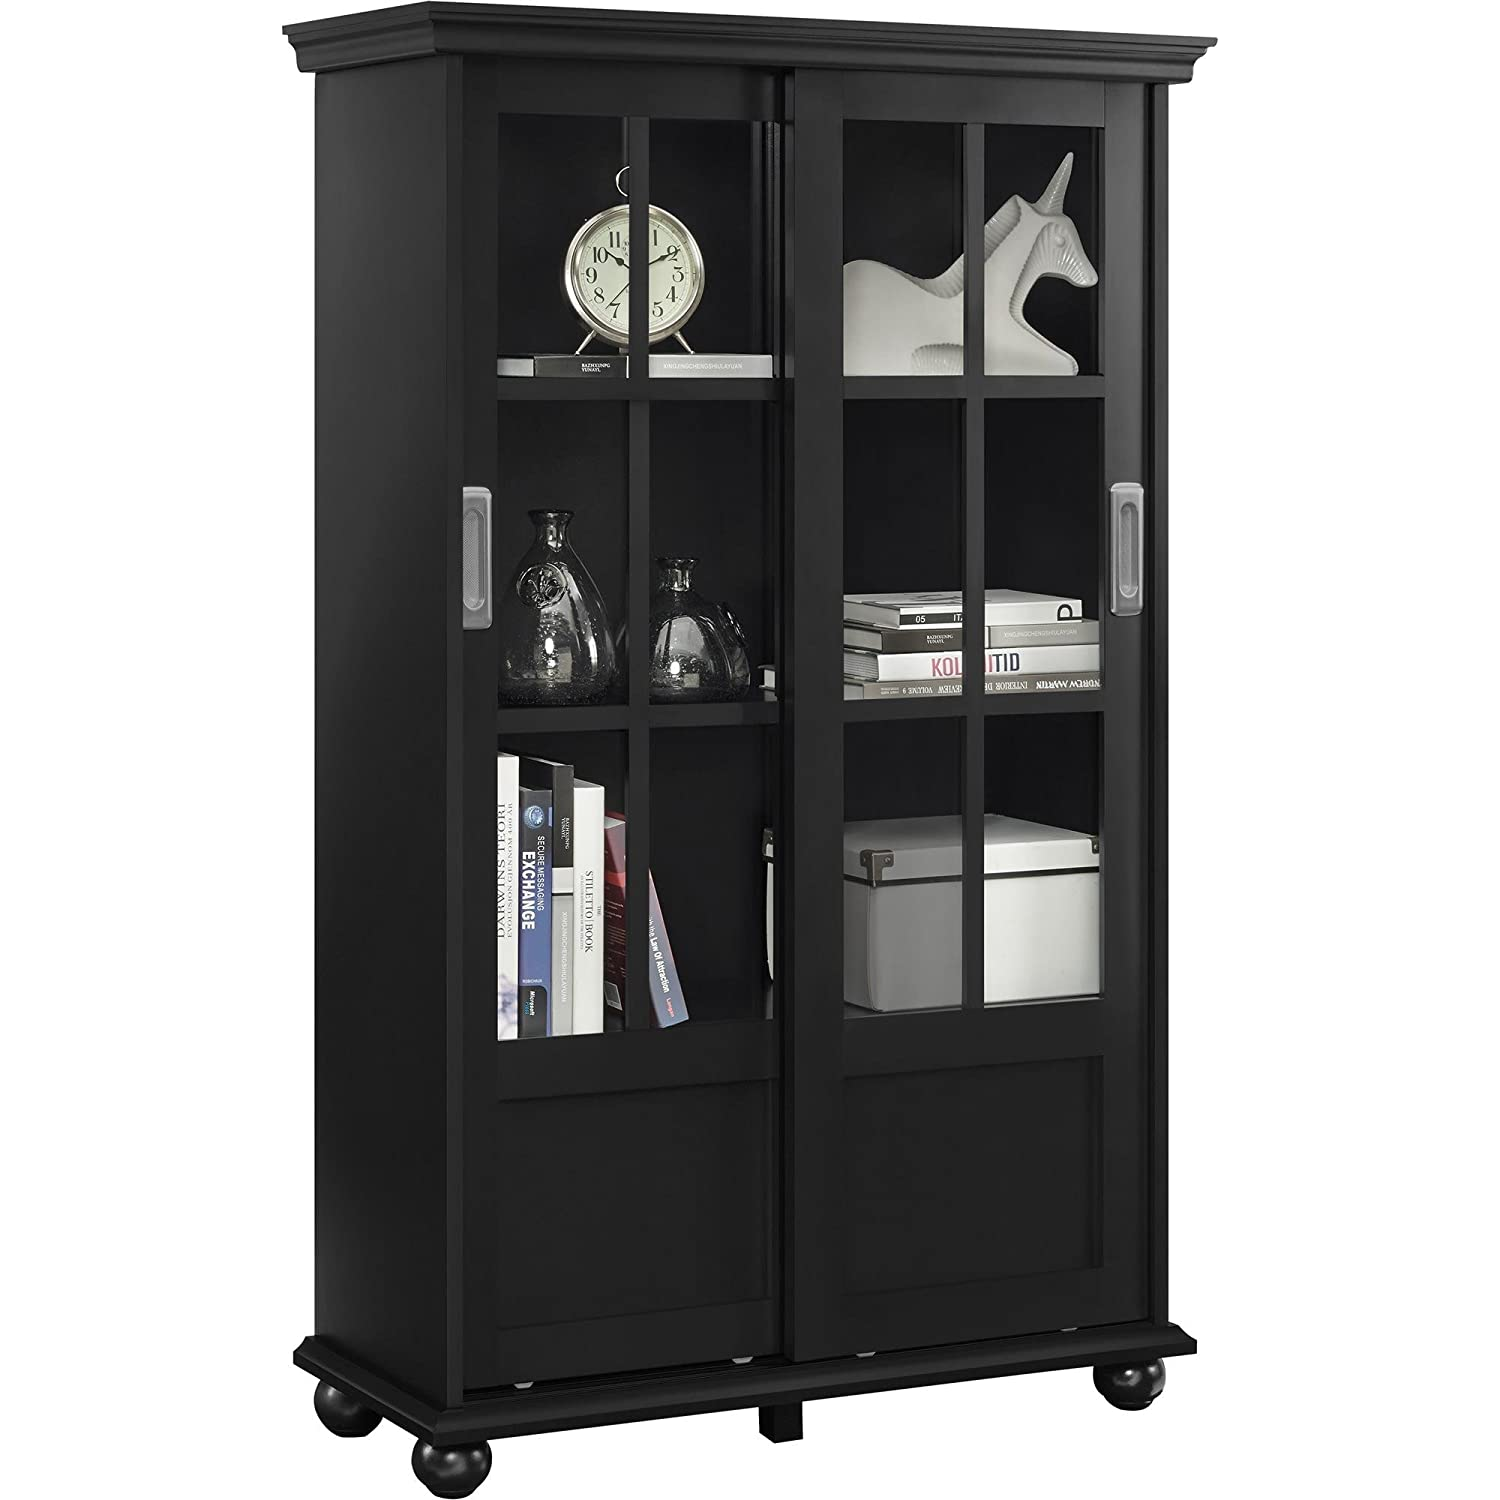 Amazon.com: Ameriwood Home Aaron Lane Bookcase with Sliding Glass Doors,  Black: Kitchen & Dining